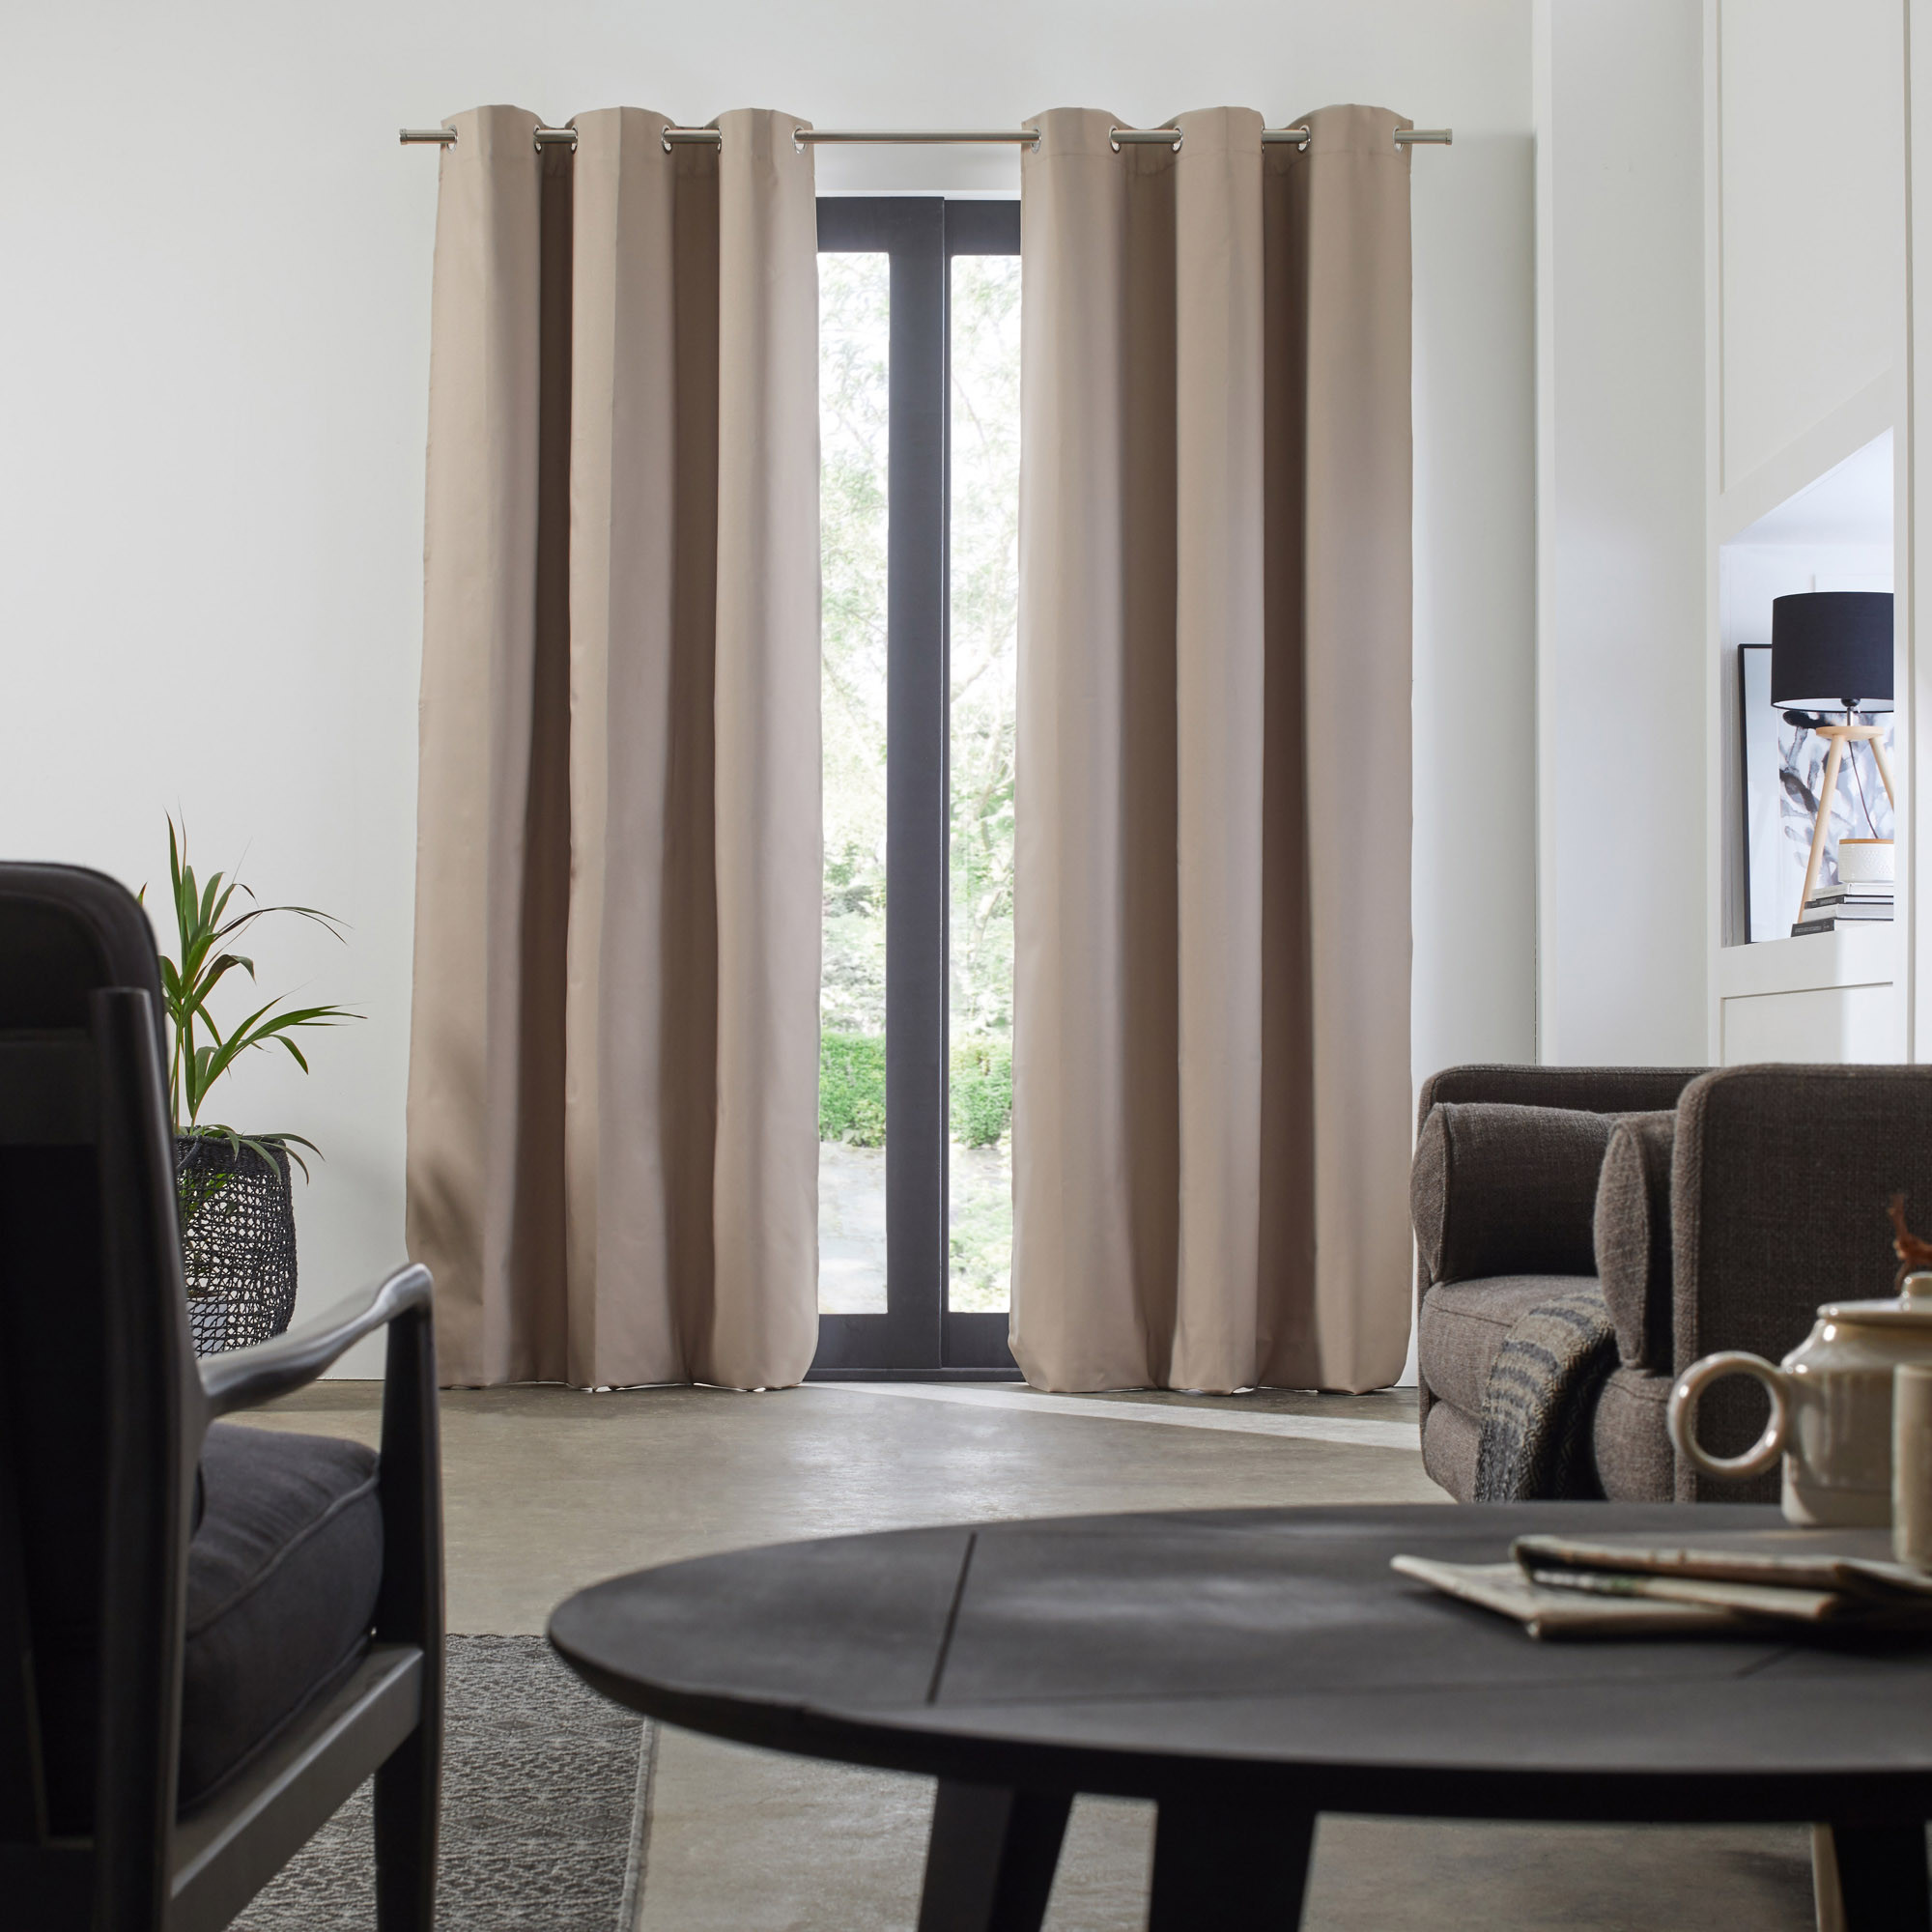 with grommets h panel itm room instyledesign curtains curtain grommet divider ebay